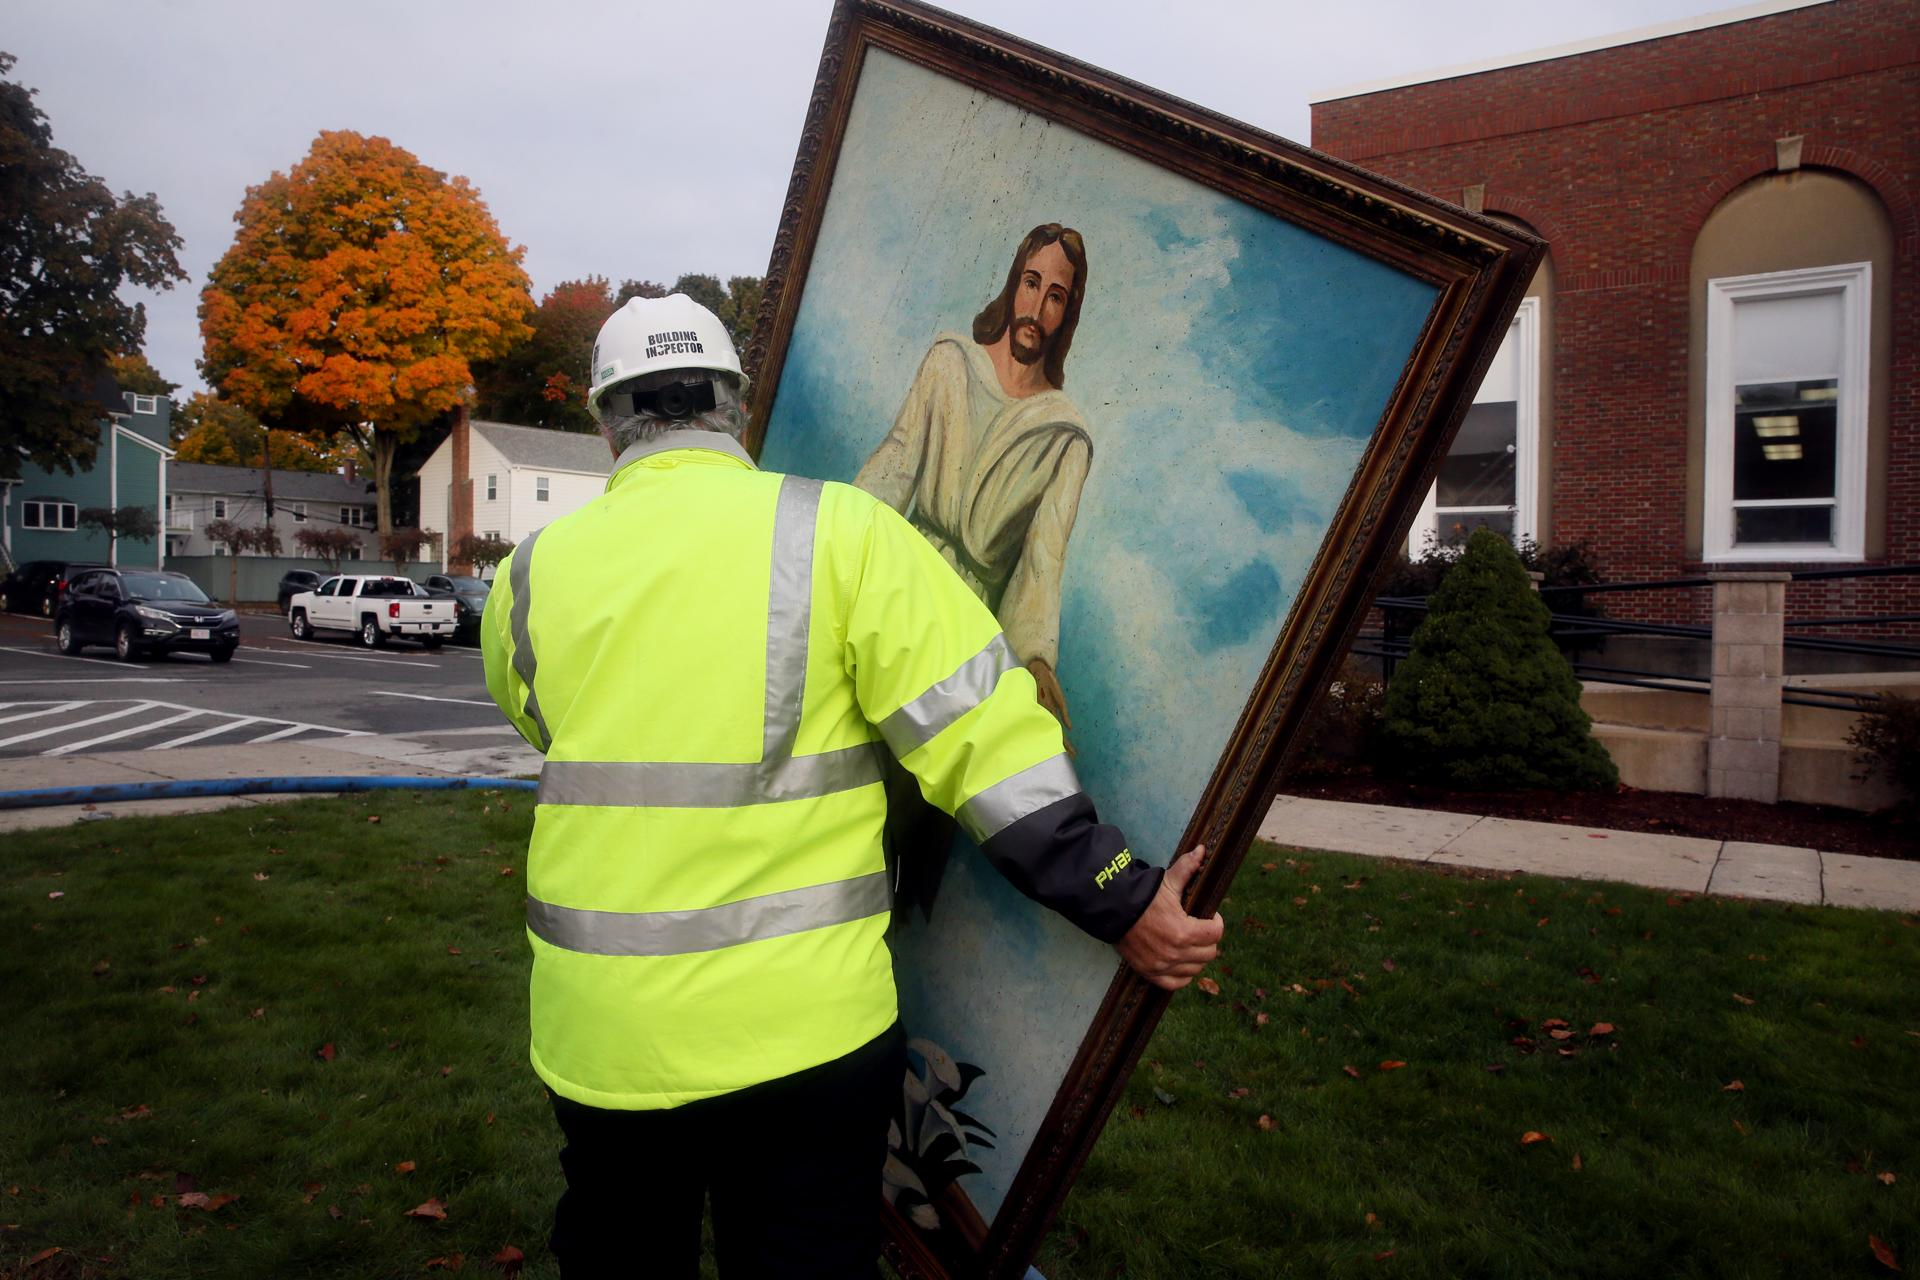 Building Inspector Jack Roberto Carried A Painting Of Jesus From The First Baptist Church After Fire